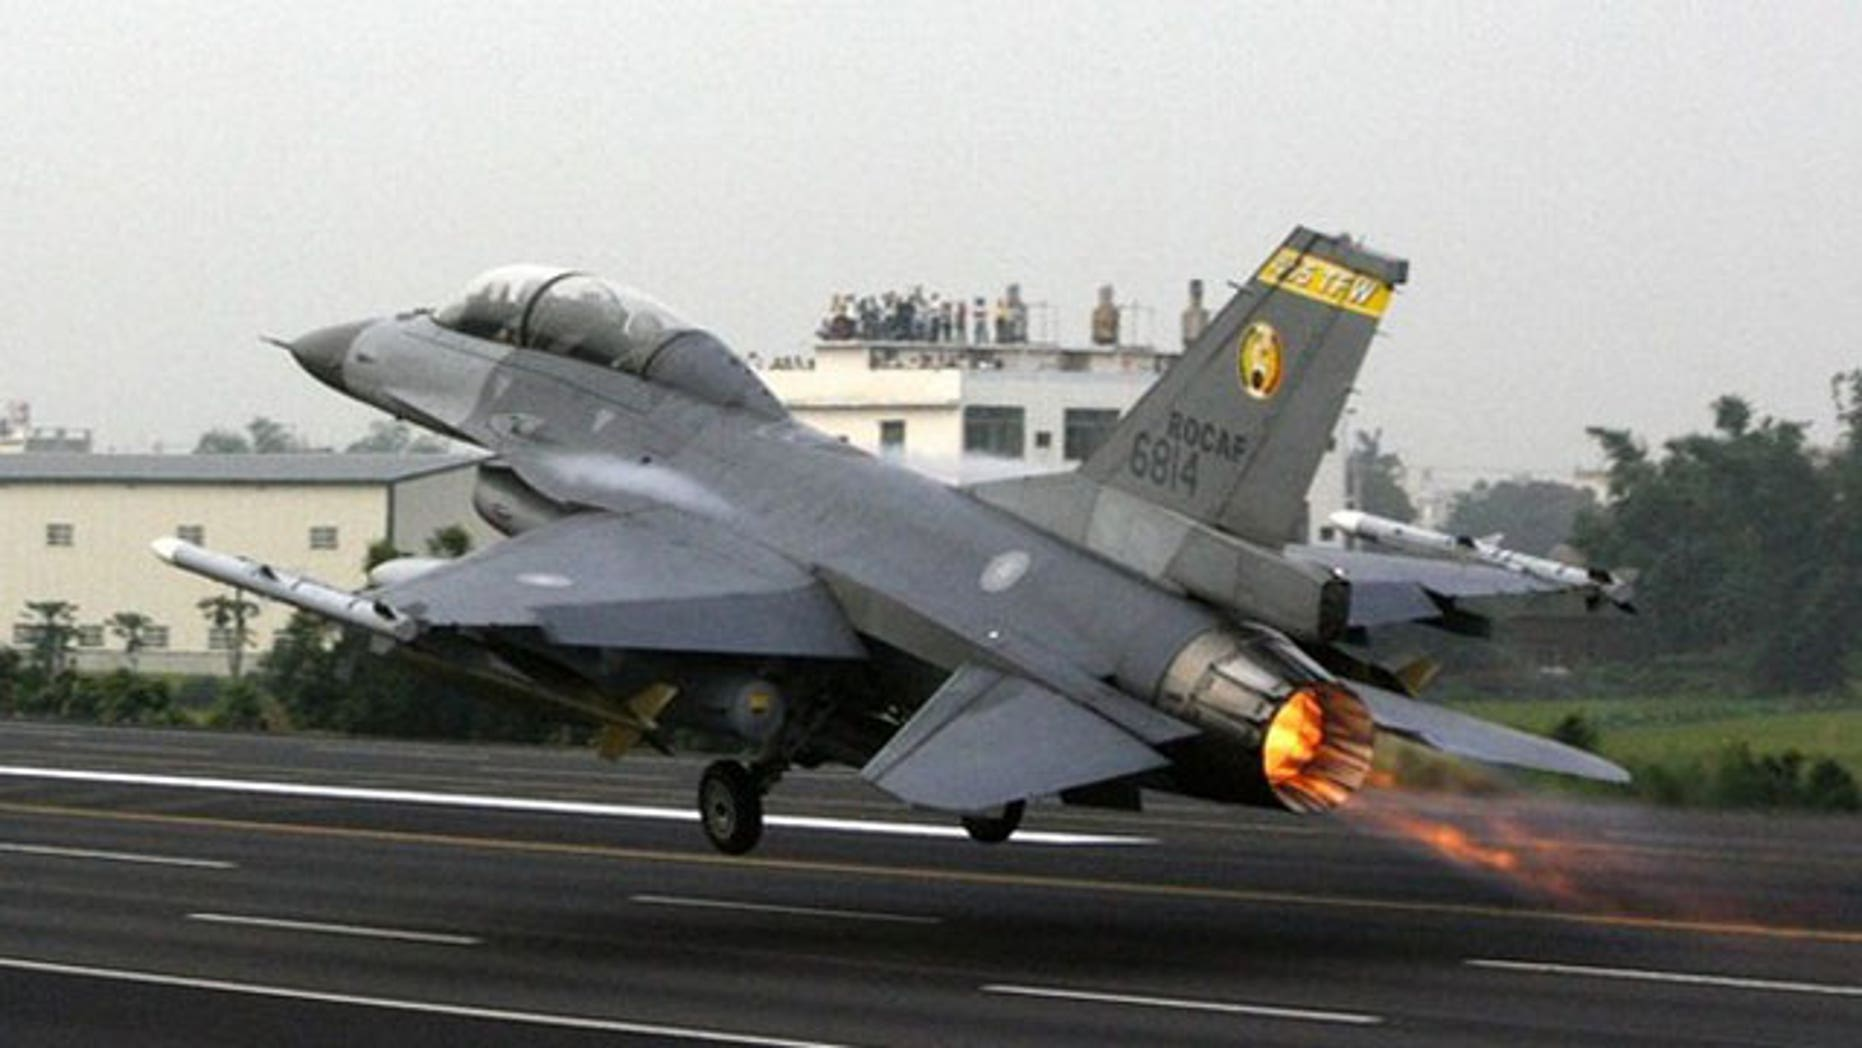 In this May 15, 2007 file photo, a Taiwan Air Force F-16 fighter jet takes off from the closed-off section of Sun Yat-sen freeway at Chang-hua county in central Taiwan.